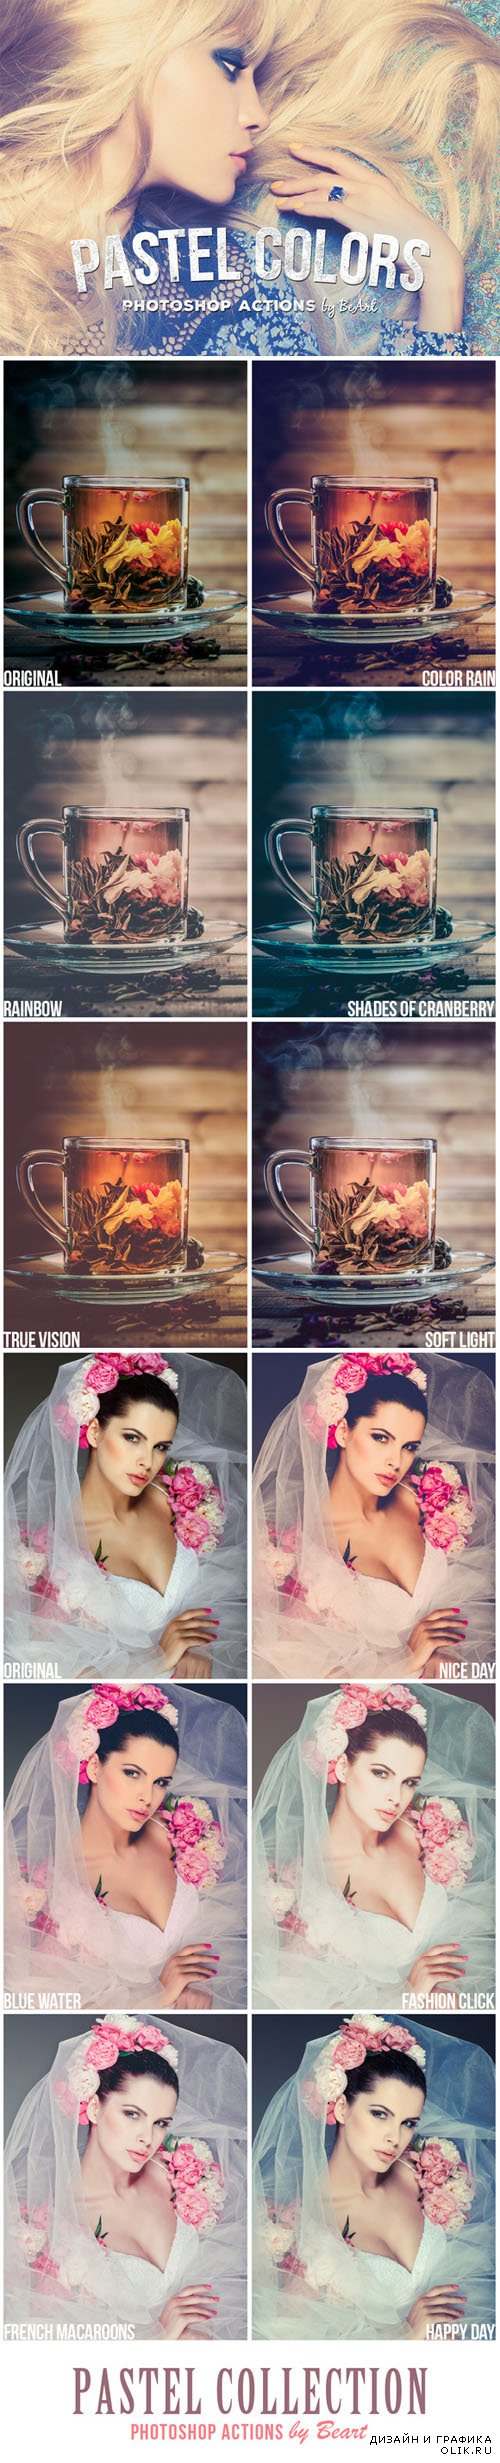 Pastel Colors Photoshop Actions - CM 137785